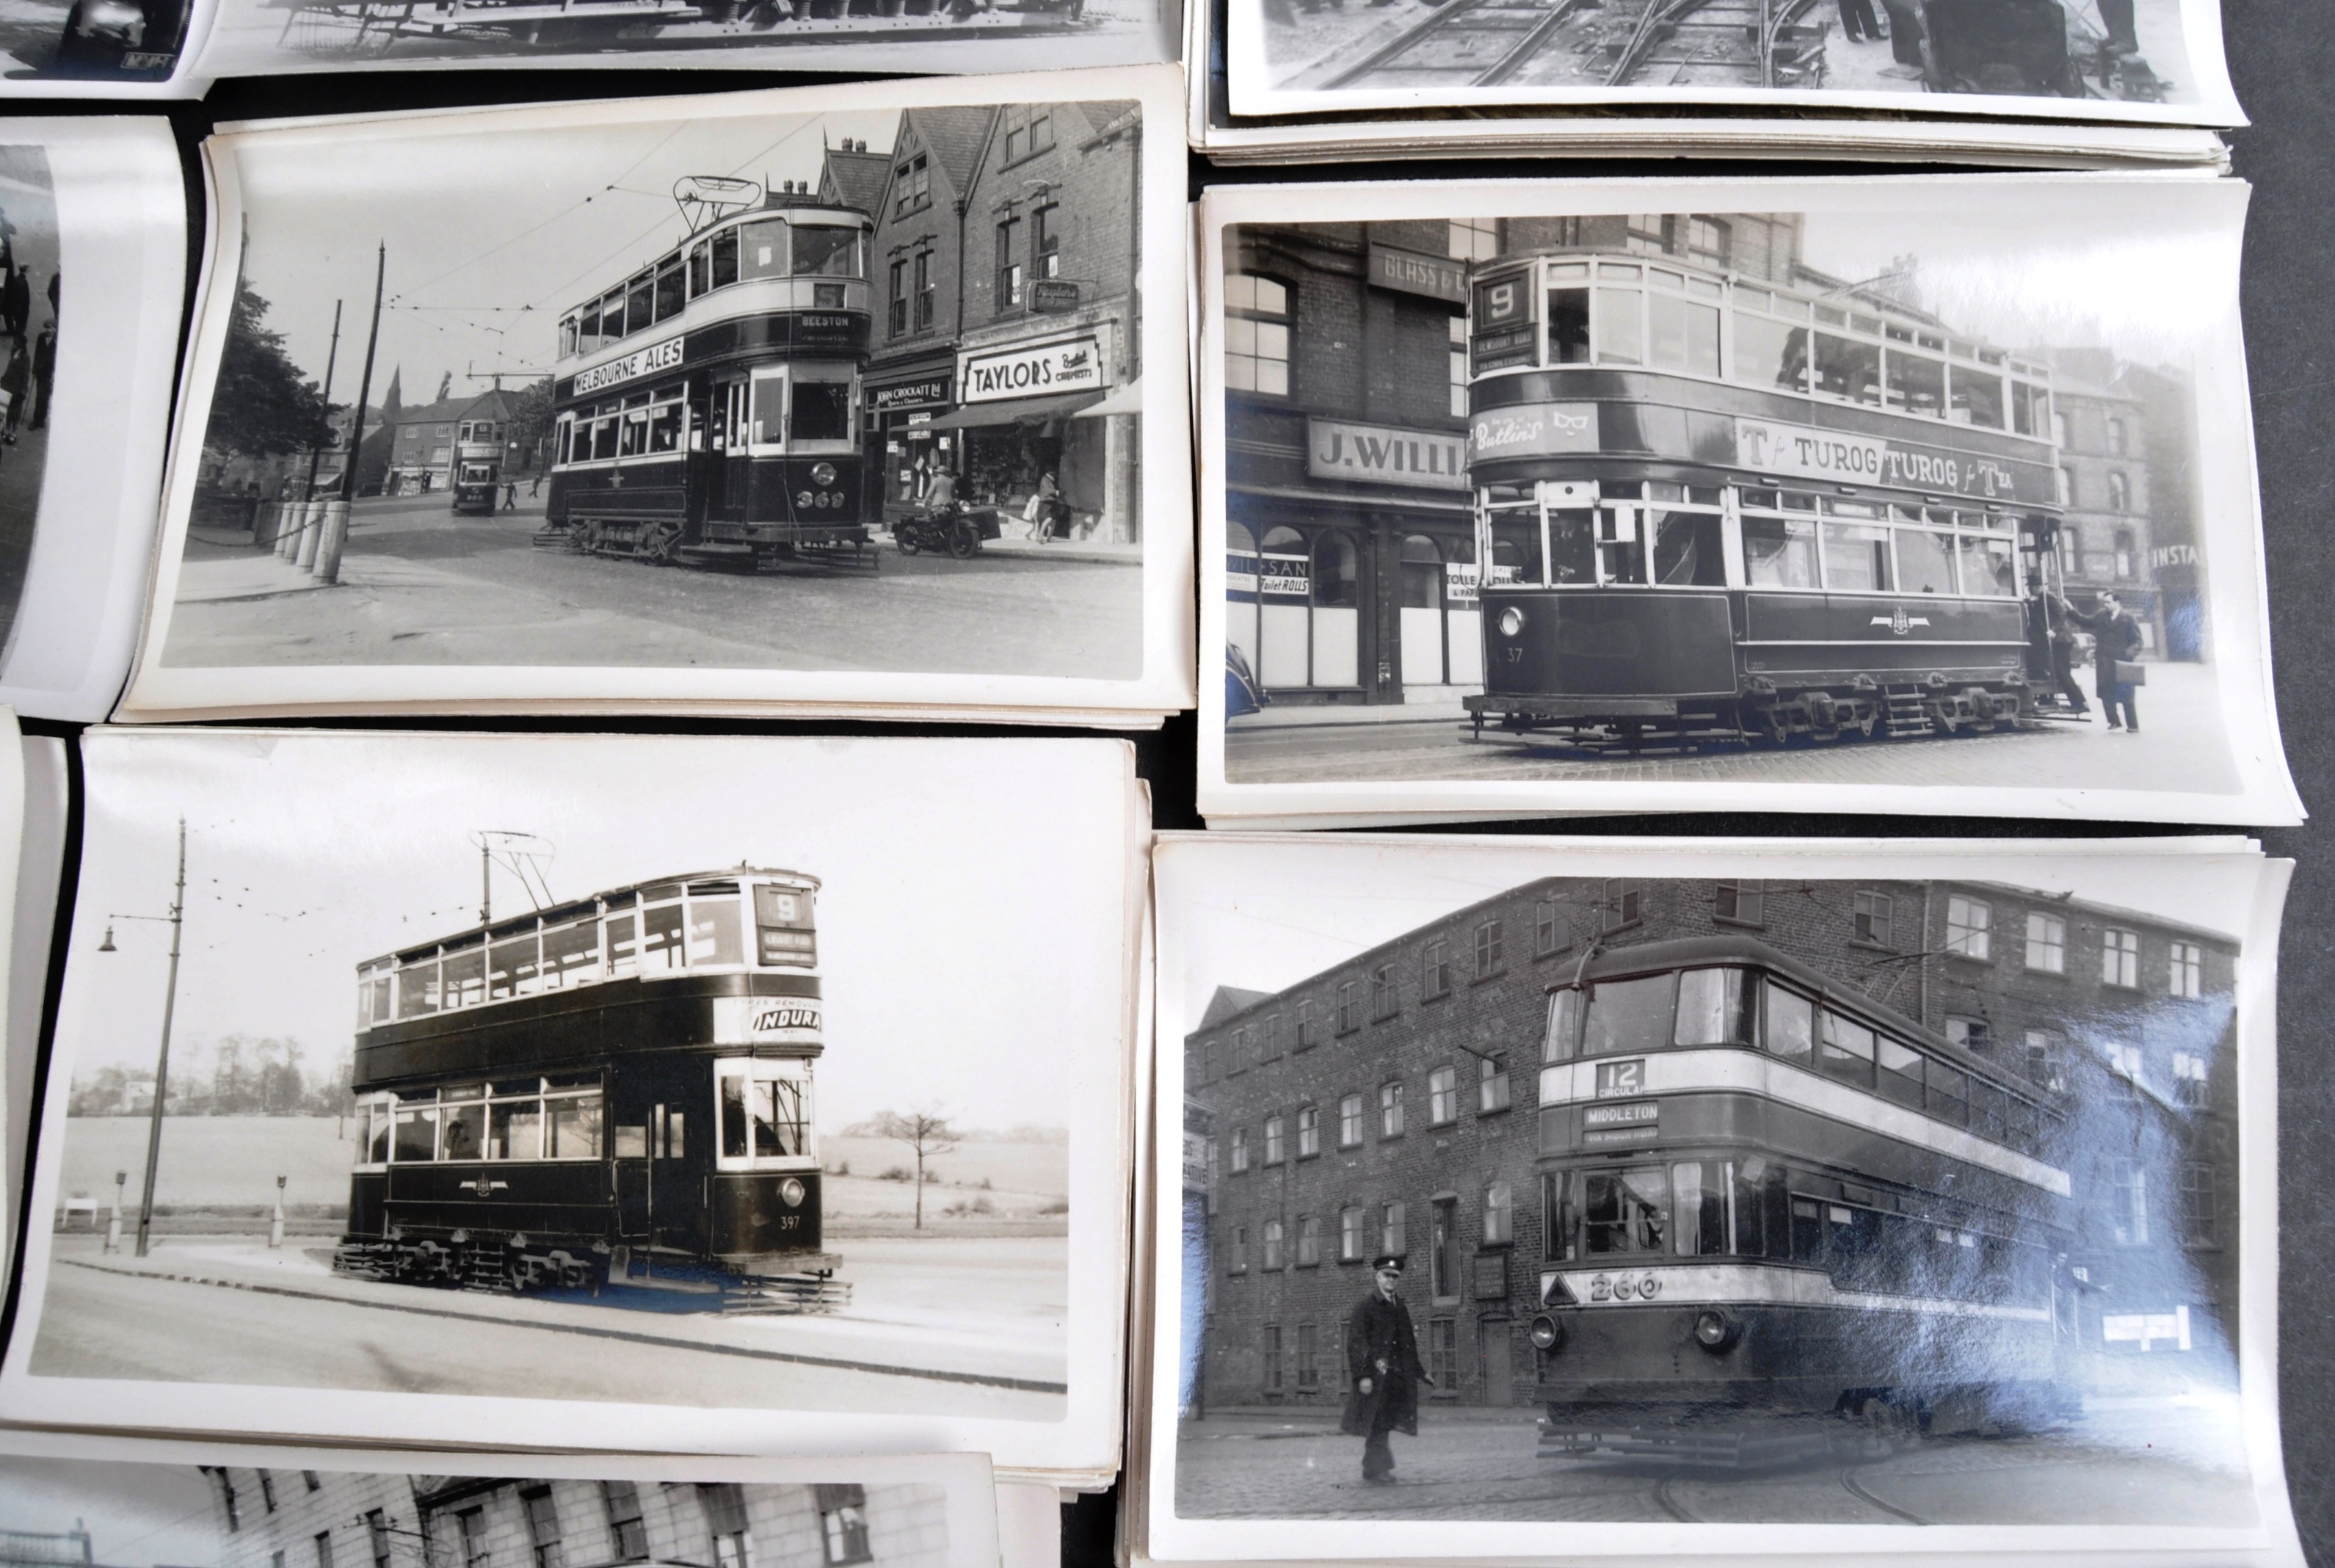 TRAMS & TROLLEY BUSES - LARGE COLLECTION OF BLACK AND WHITE PHOTOS - Image 3 of 9